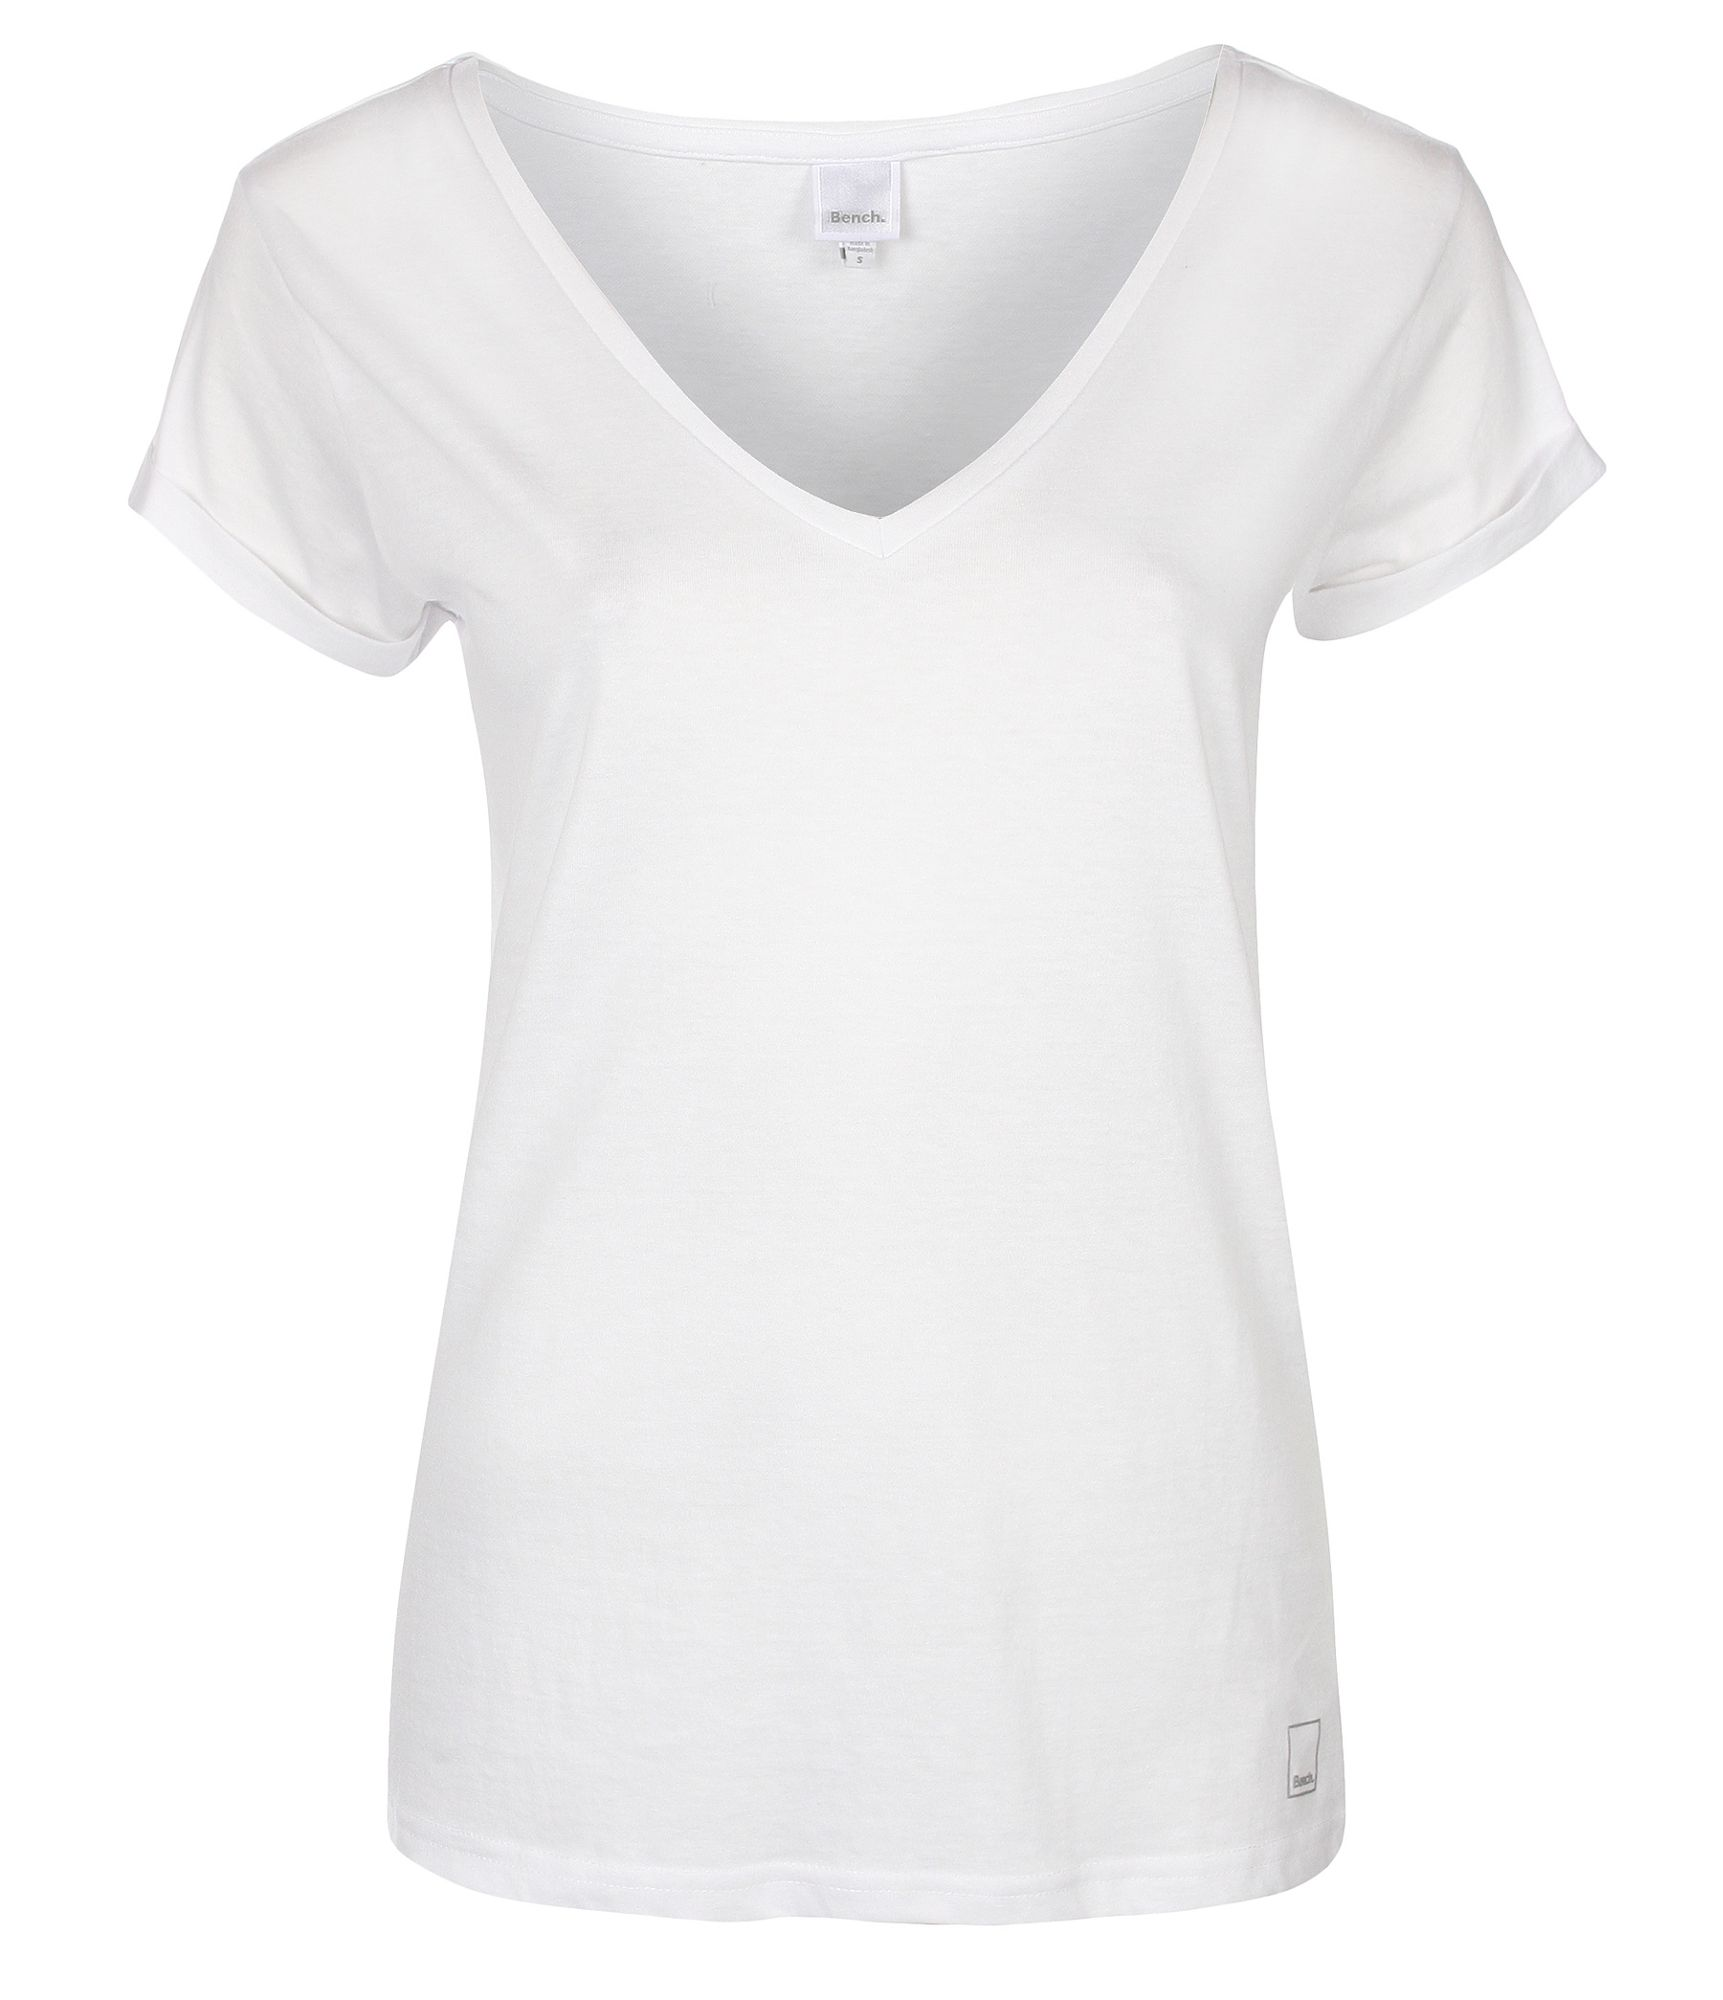 Lyst - Bench Womens The V Tee V Neck T-Shirt In White-1182